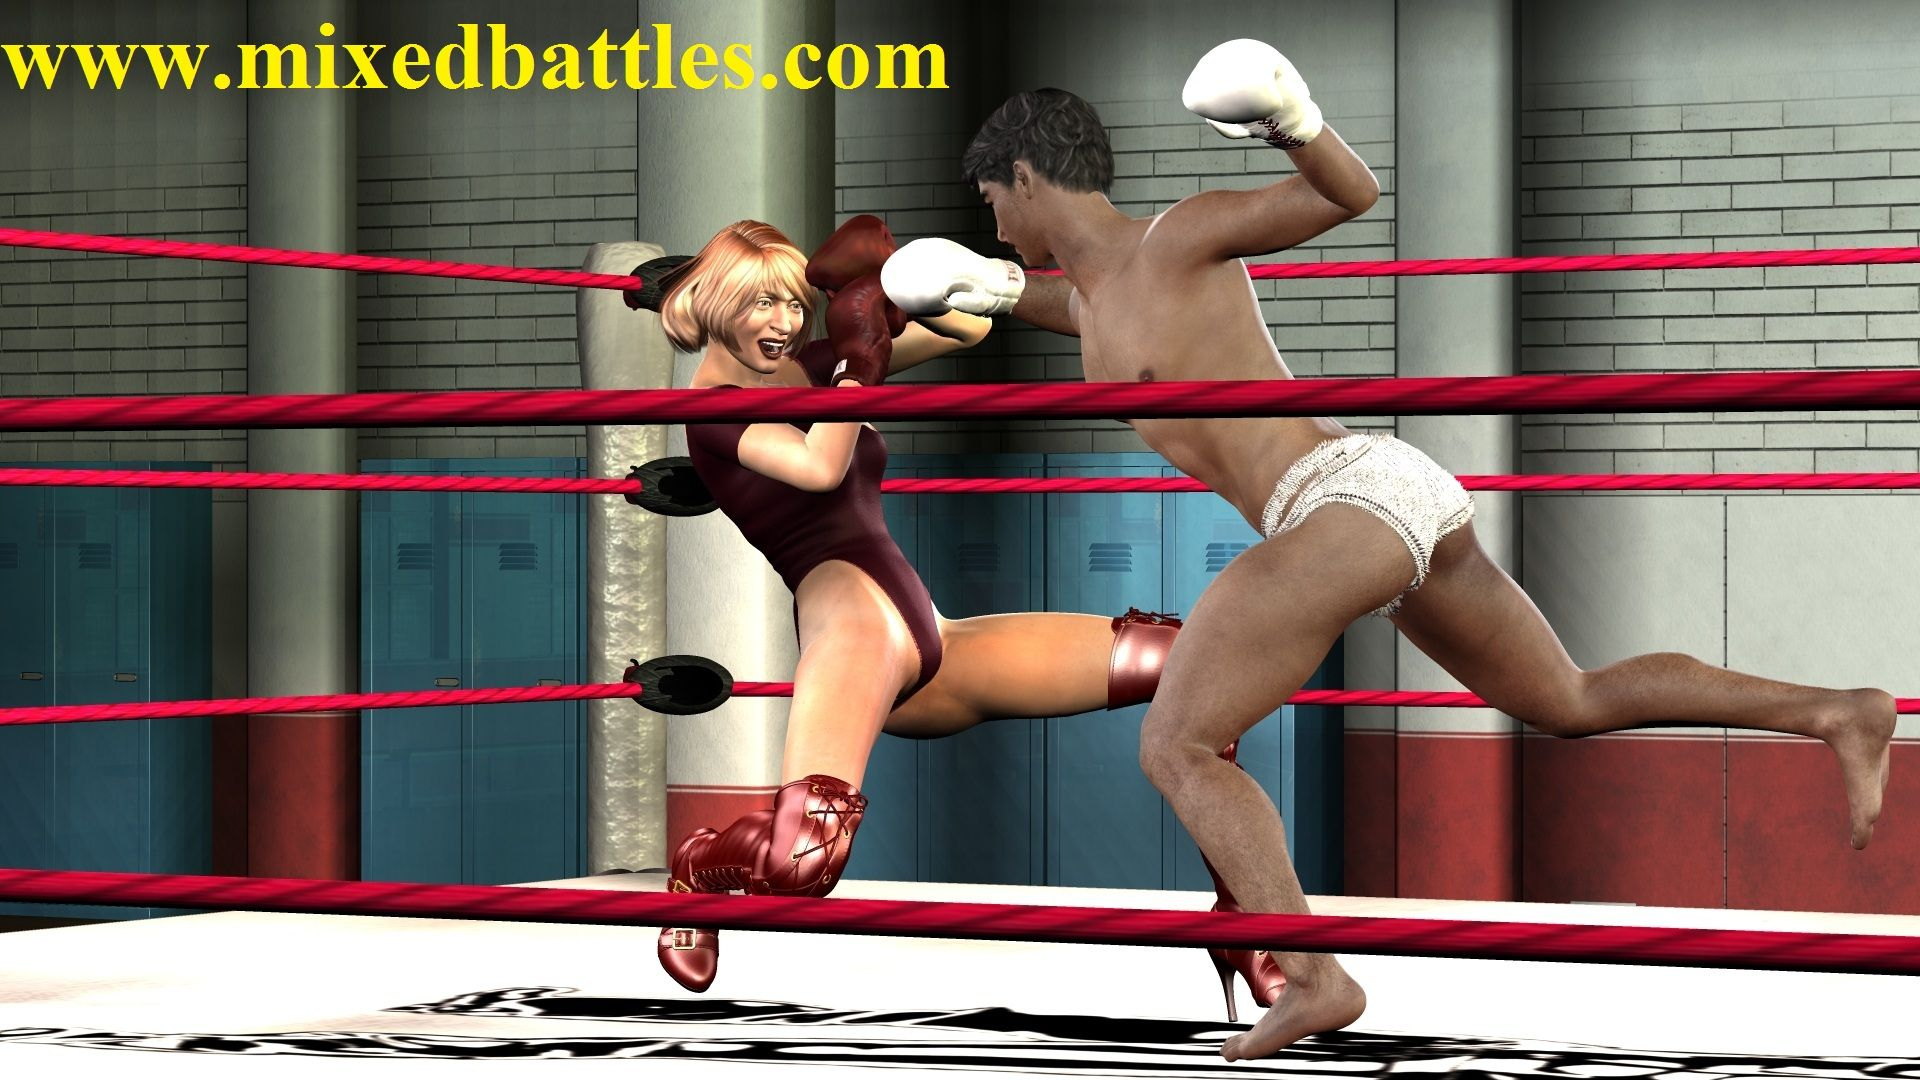 Showing xxx images for japanese mixed boxing sex xxx